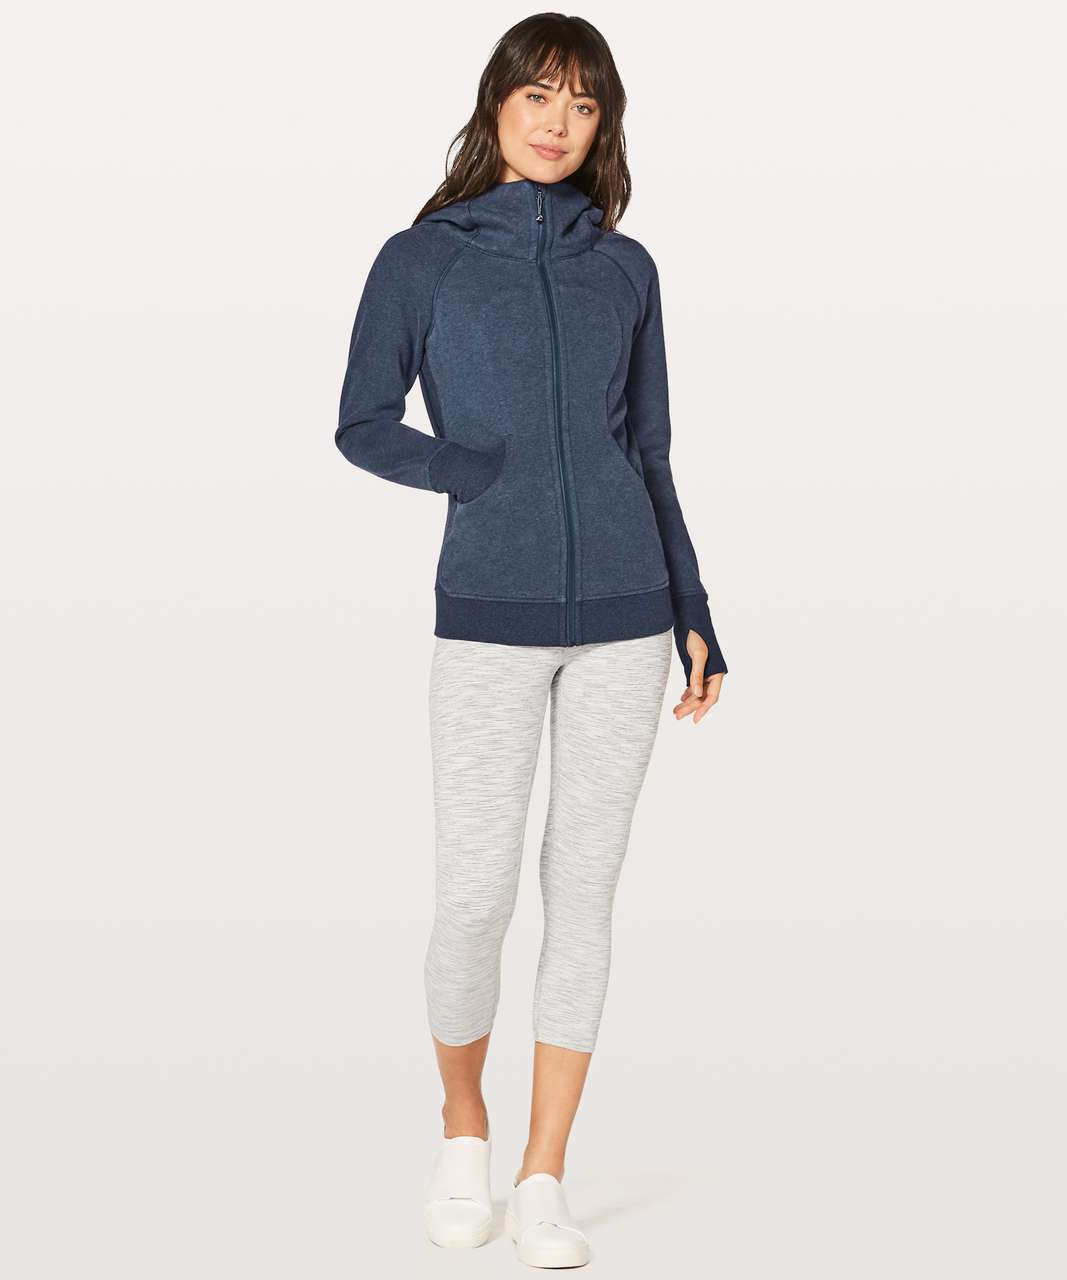 Lululemon Scuba Hoodie *Classic Cotton Fleece - Heathered Deep Navy / Deep Navy